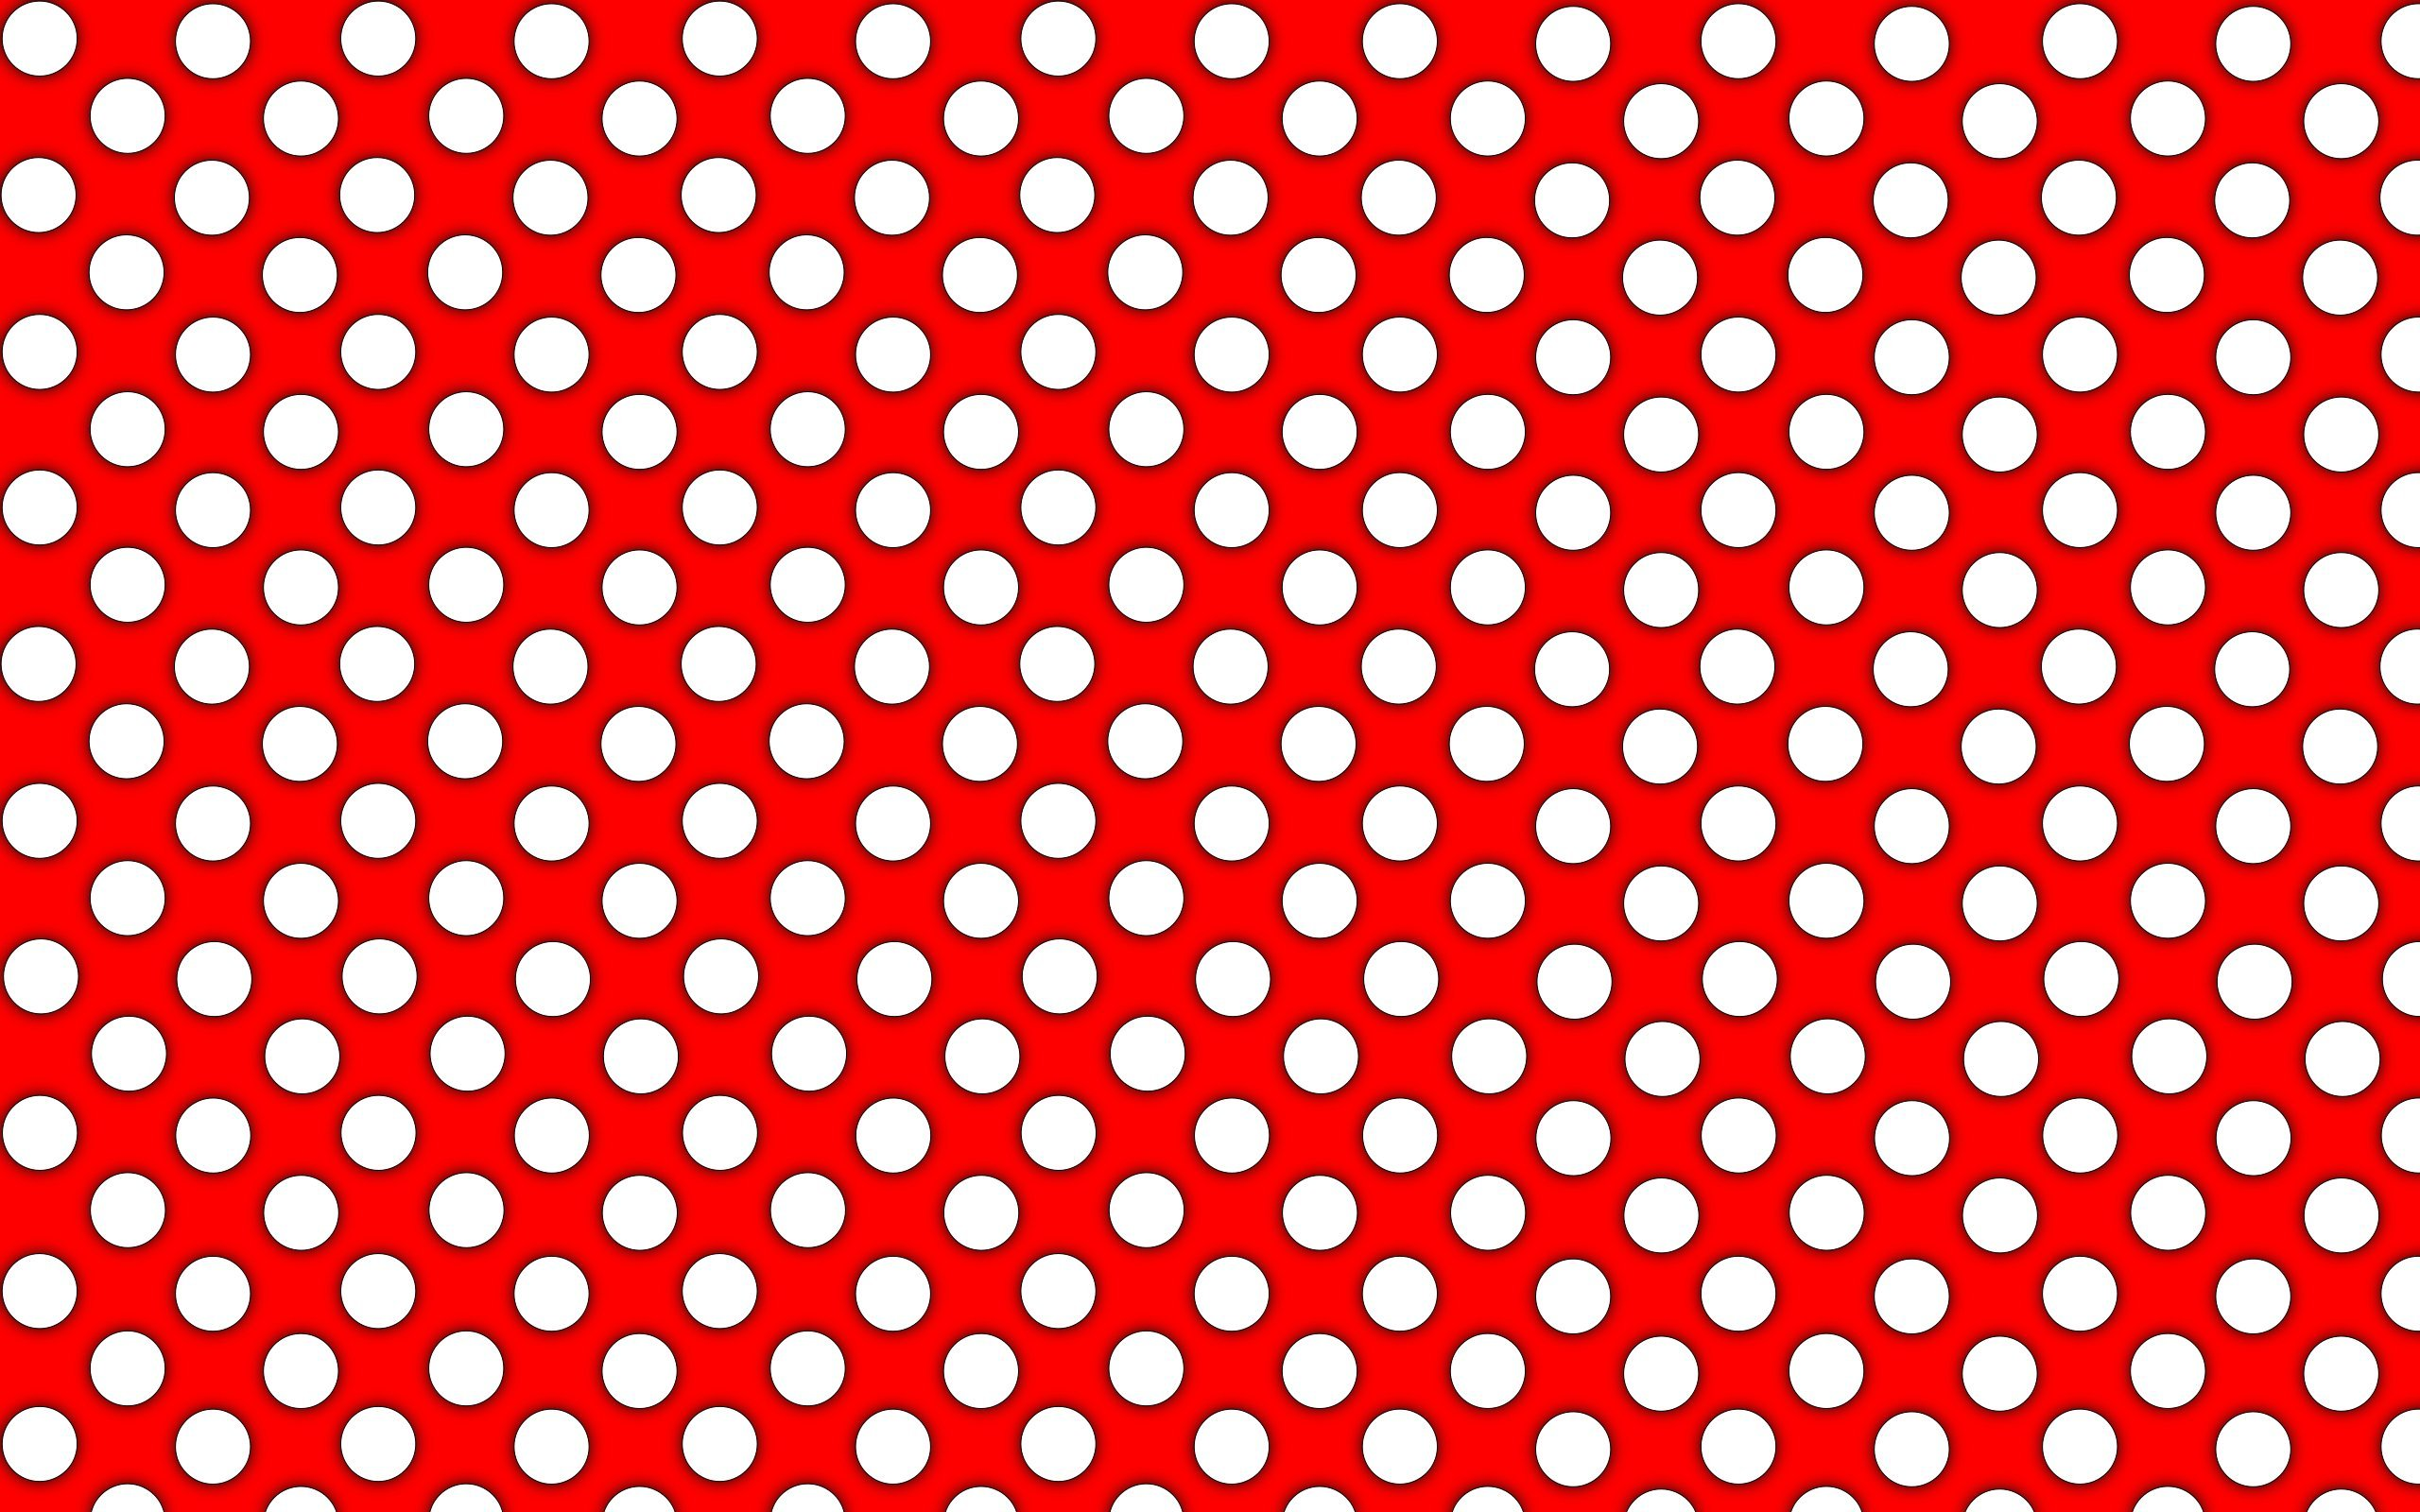 dotted texture wallpaper 1920x1080 - photo #34